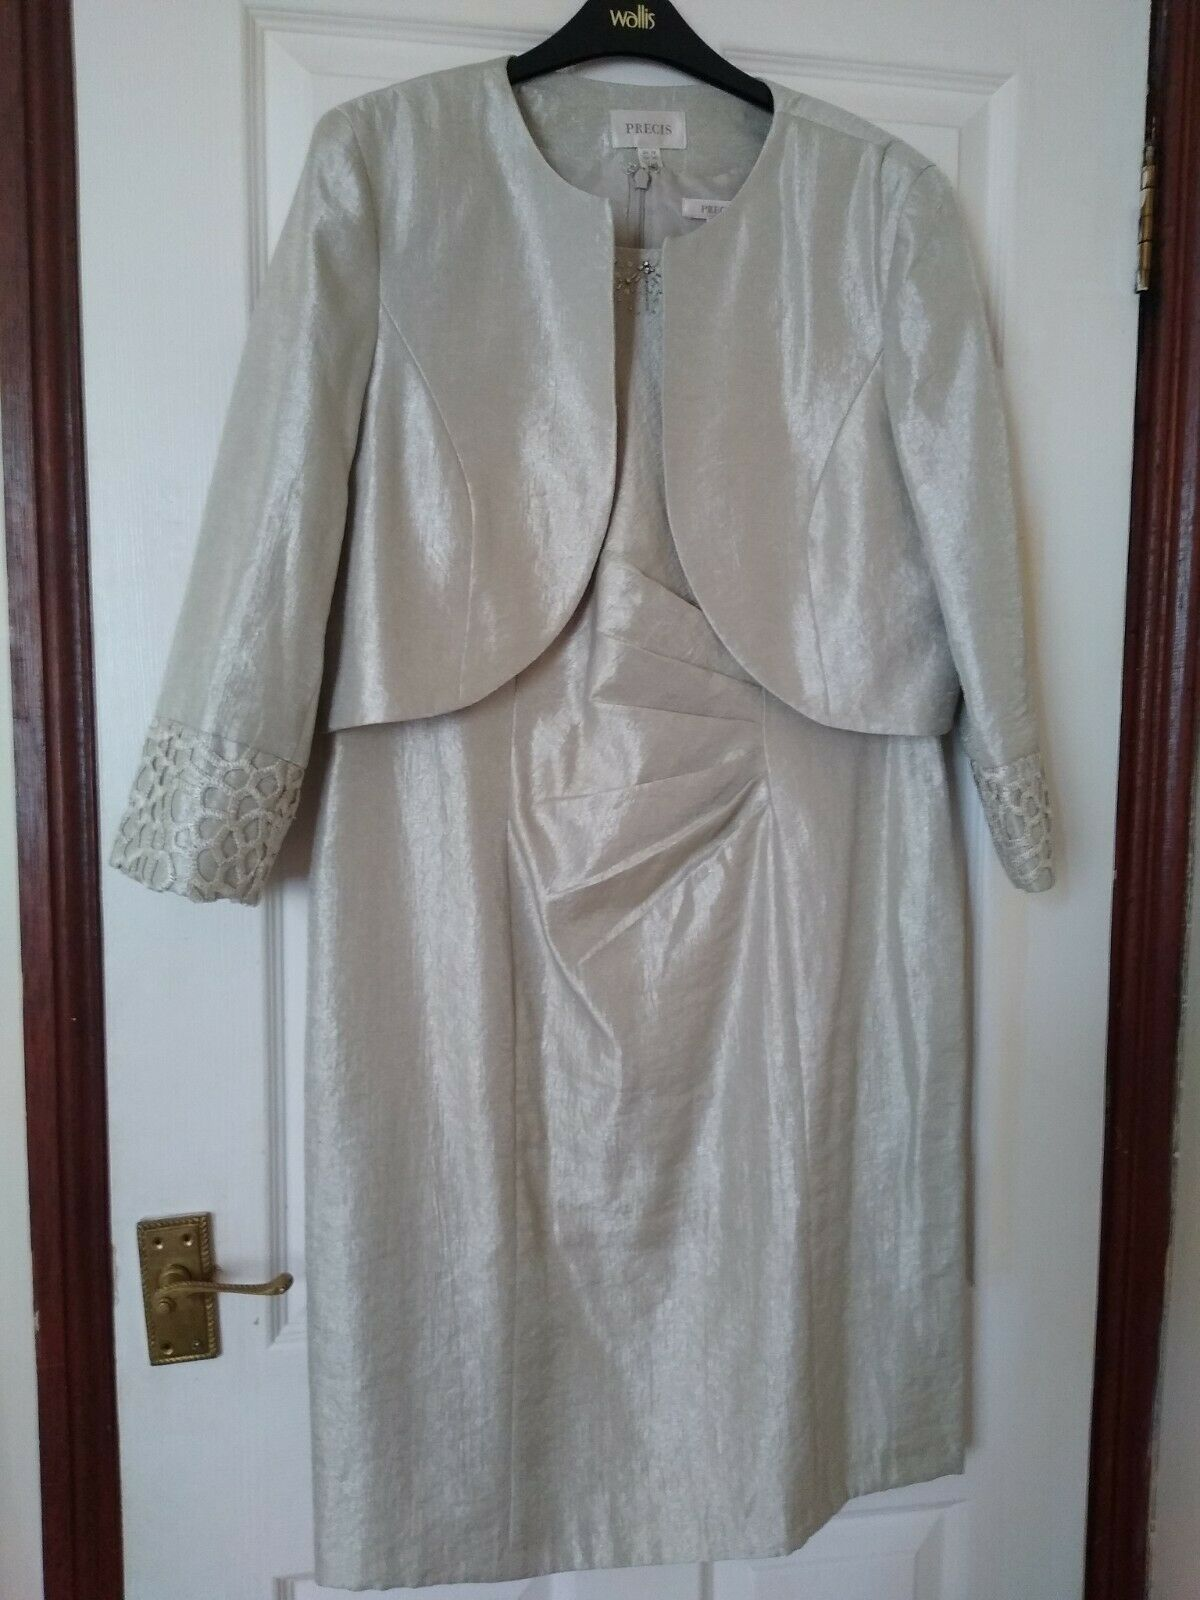 MOTHER OF THE BRIDE/SPECIAL OCCASION OUTFIT/ SIZE 16